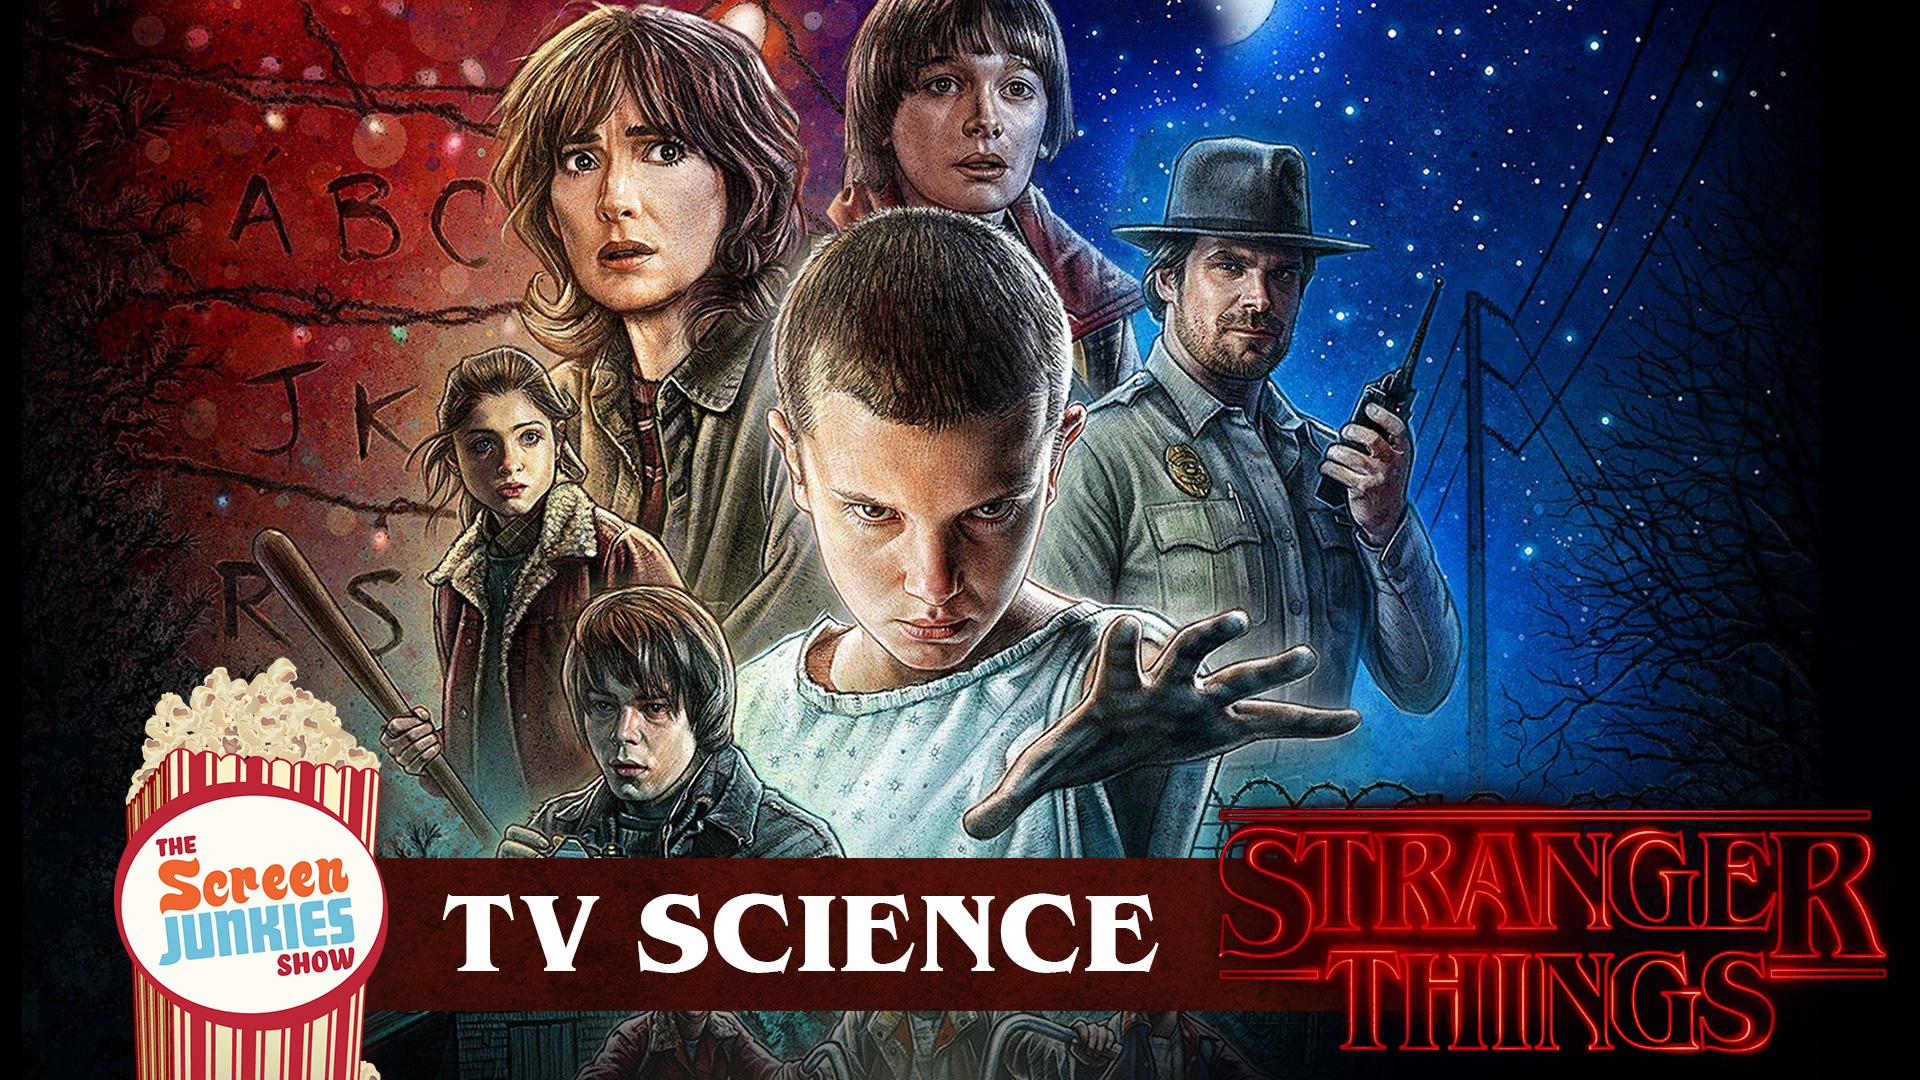 TV Science: The Science of Stranger Things